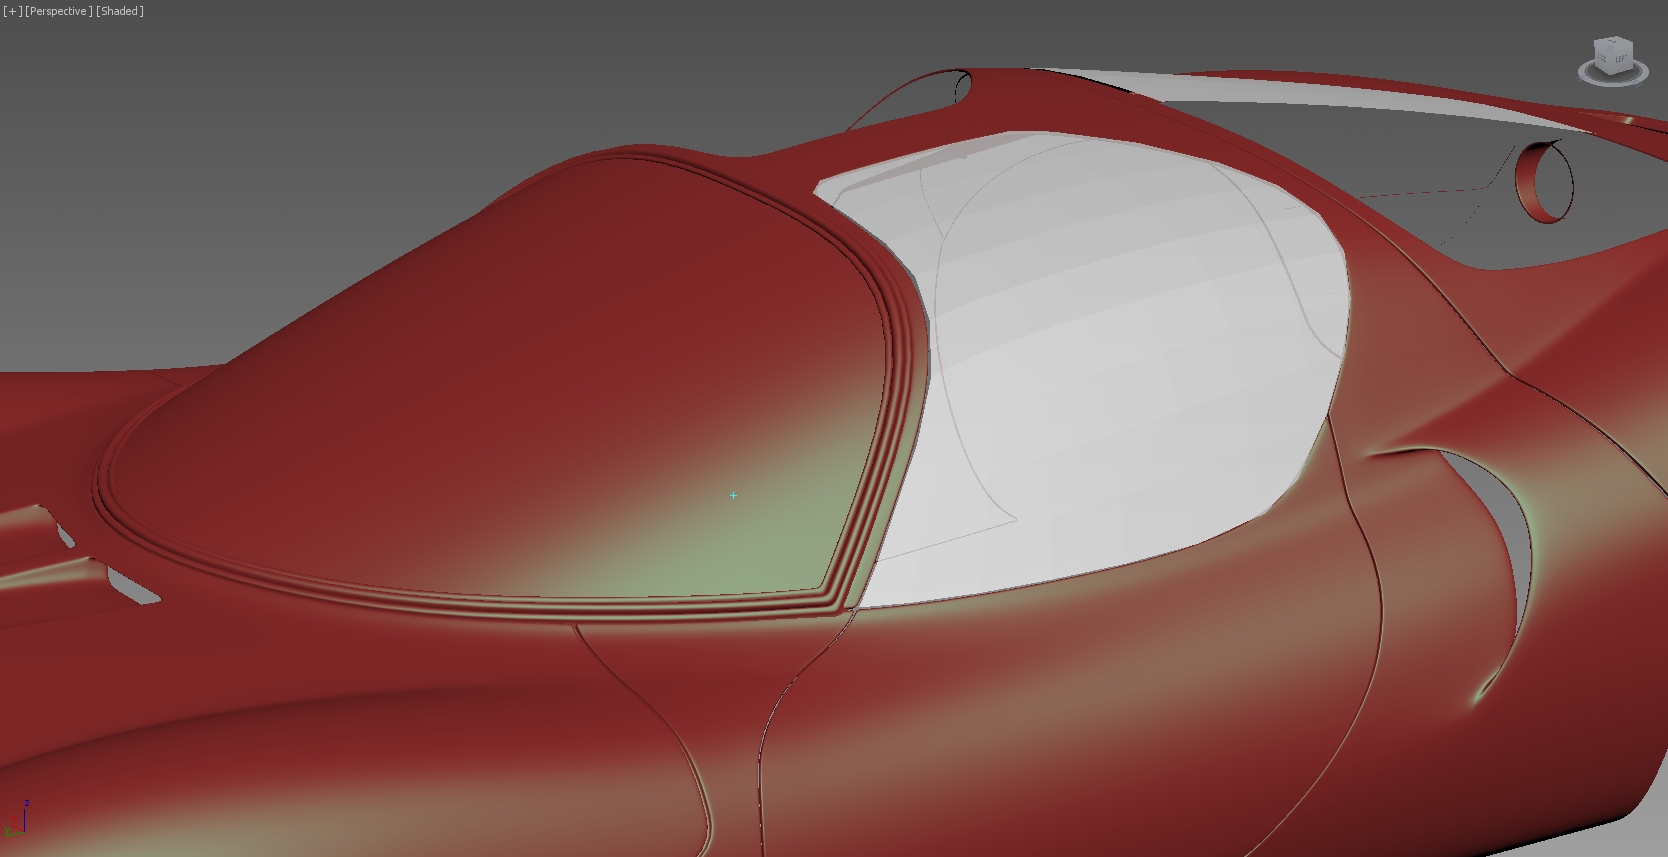 WIP Concours d'Elegance